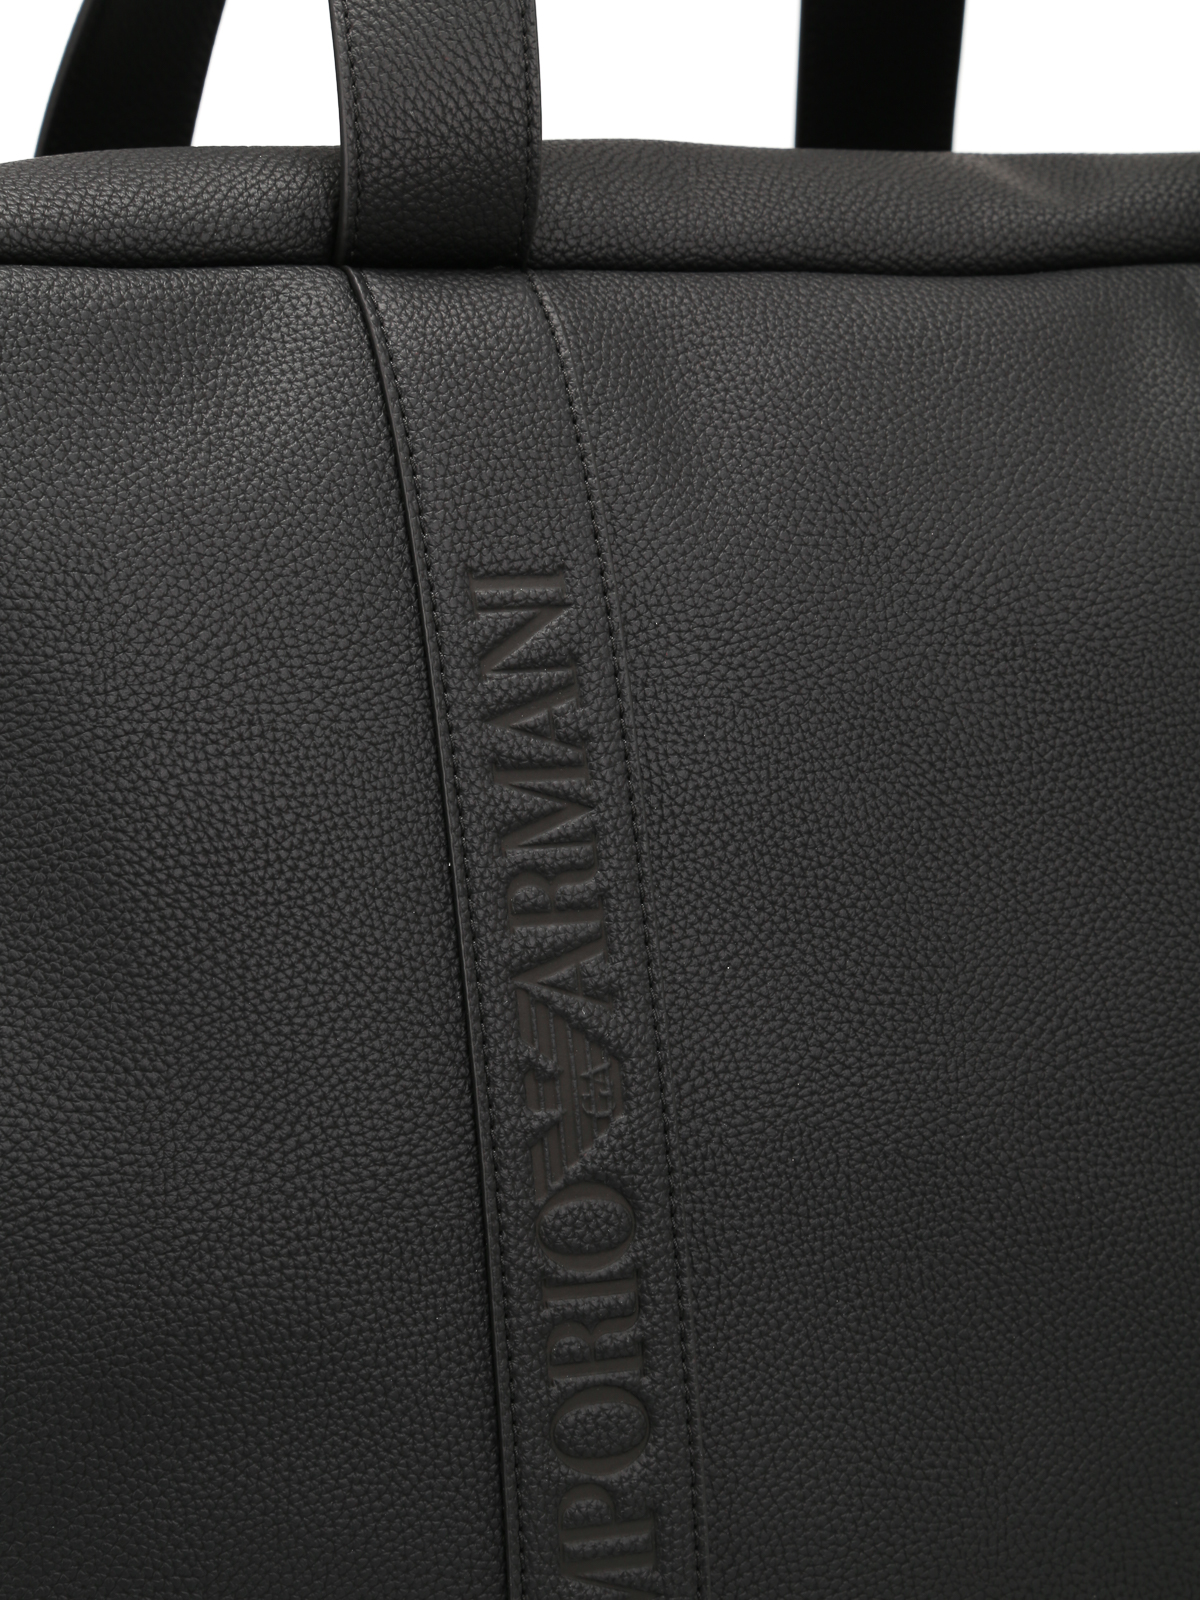 Emporio Armani - Black faux leather travel bag - Luggage   Travel ... f3f8f55ff5